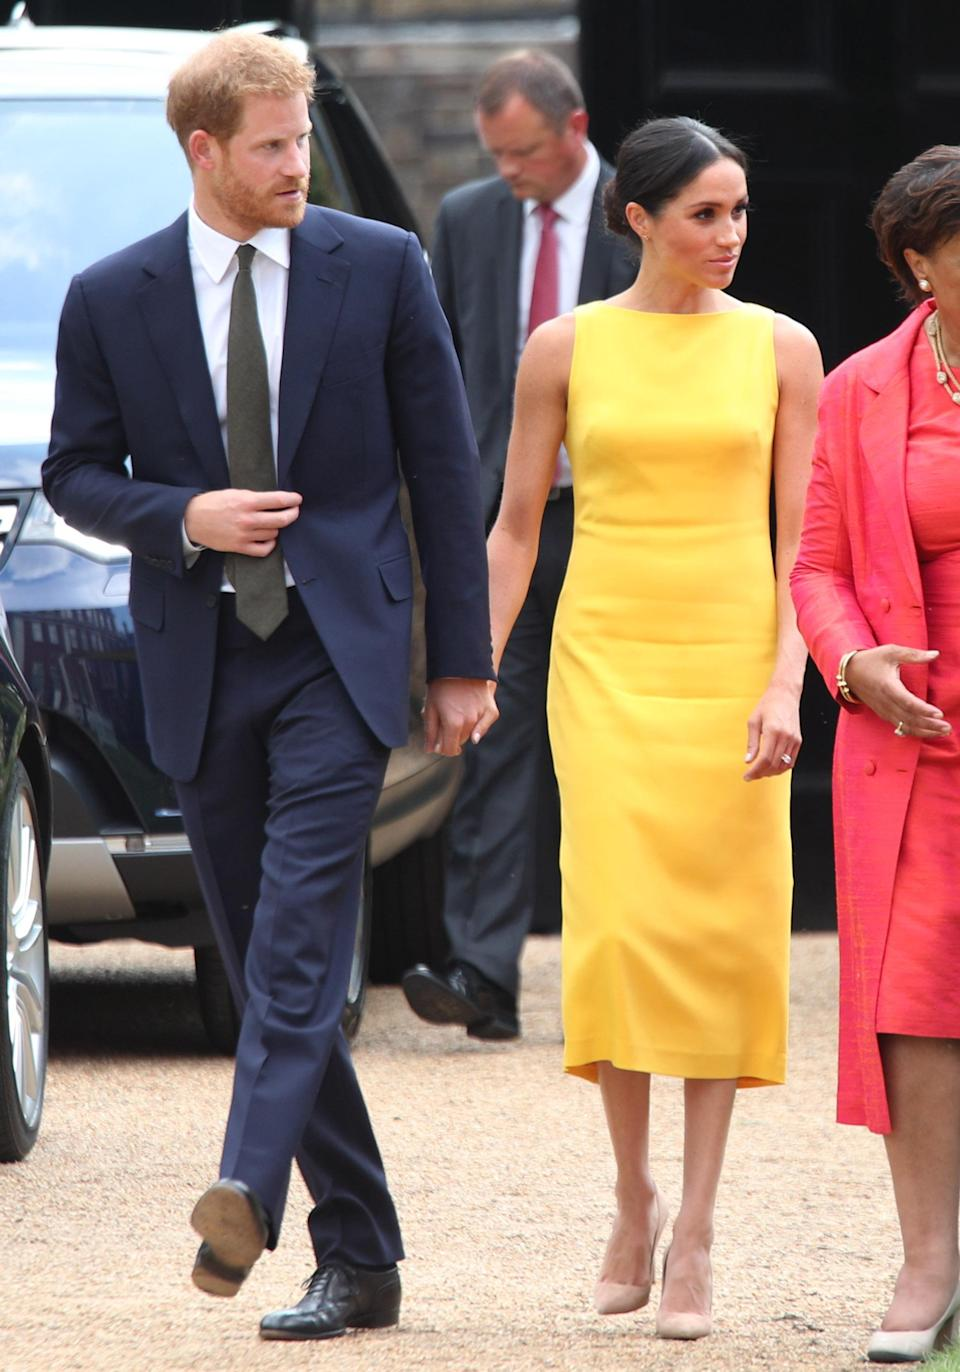 The Duke and Duchess of Sussex arrived holding hands [Photo: Getty]